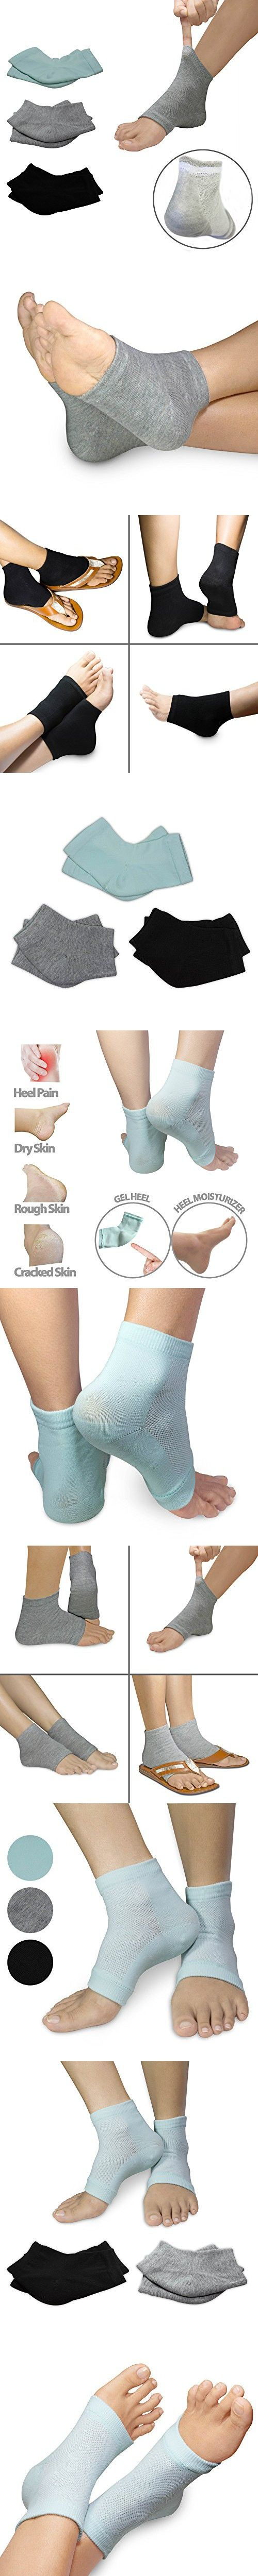 3 PACK - Moisturizing Vented Gel Day/Night Heel Socks for Dry Hard Cracked Heels with Enriched Vitamins by Triim Fitness (3Pack)